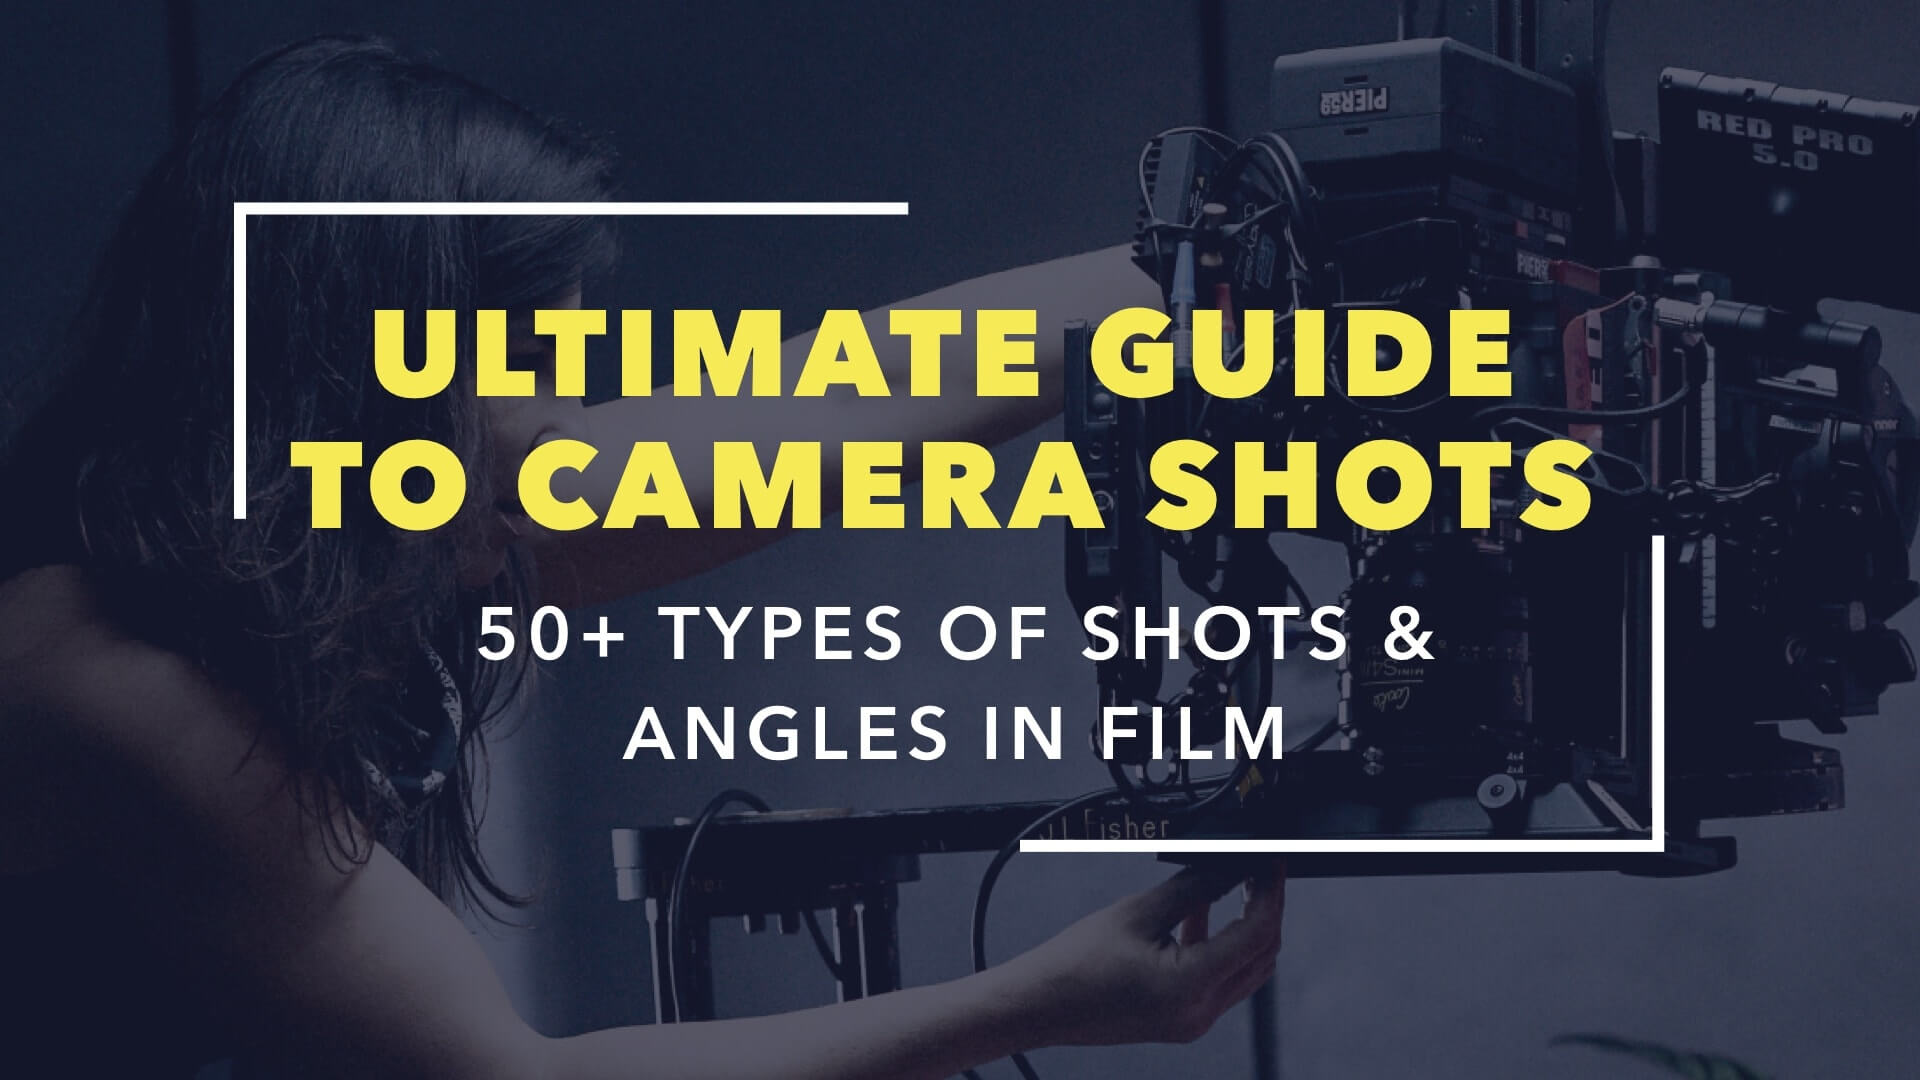 Ultimate Guide To Camera Shots - Social Image - StudioBinder